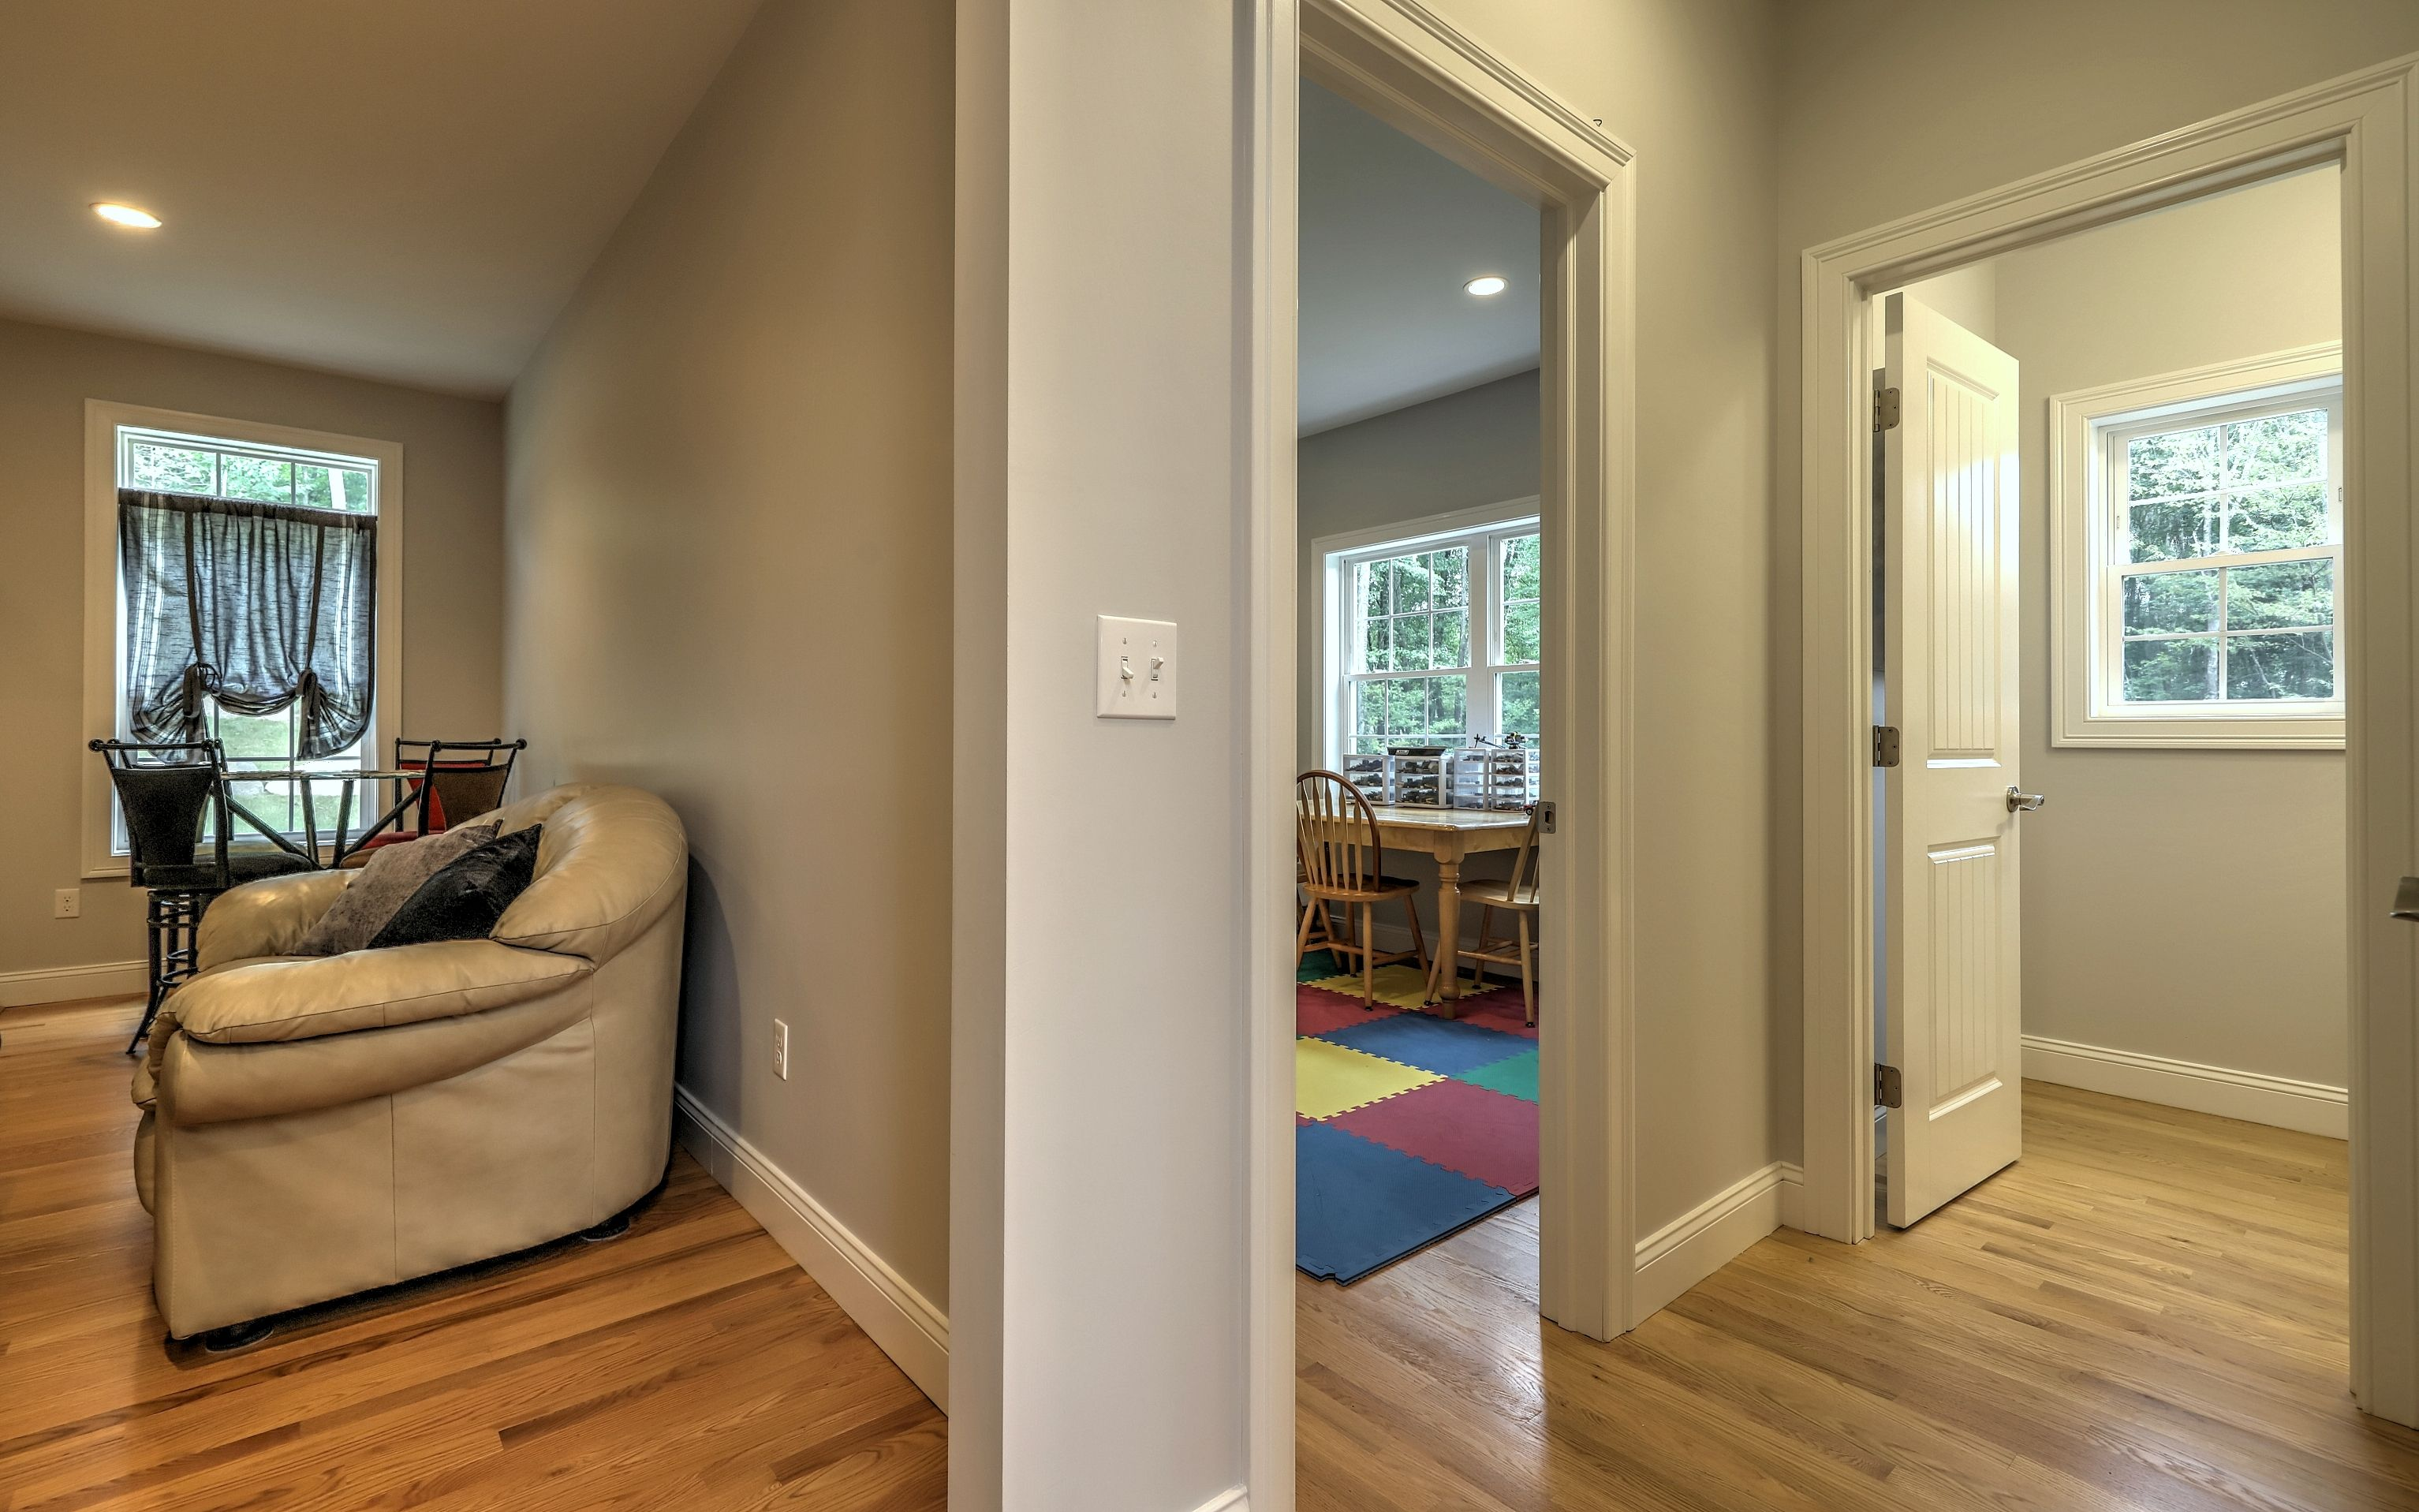 3800 sq ft. colonial house interior